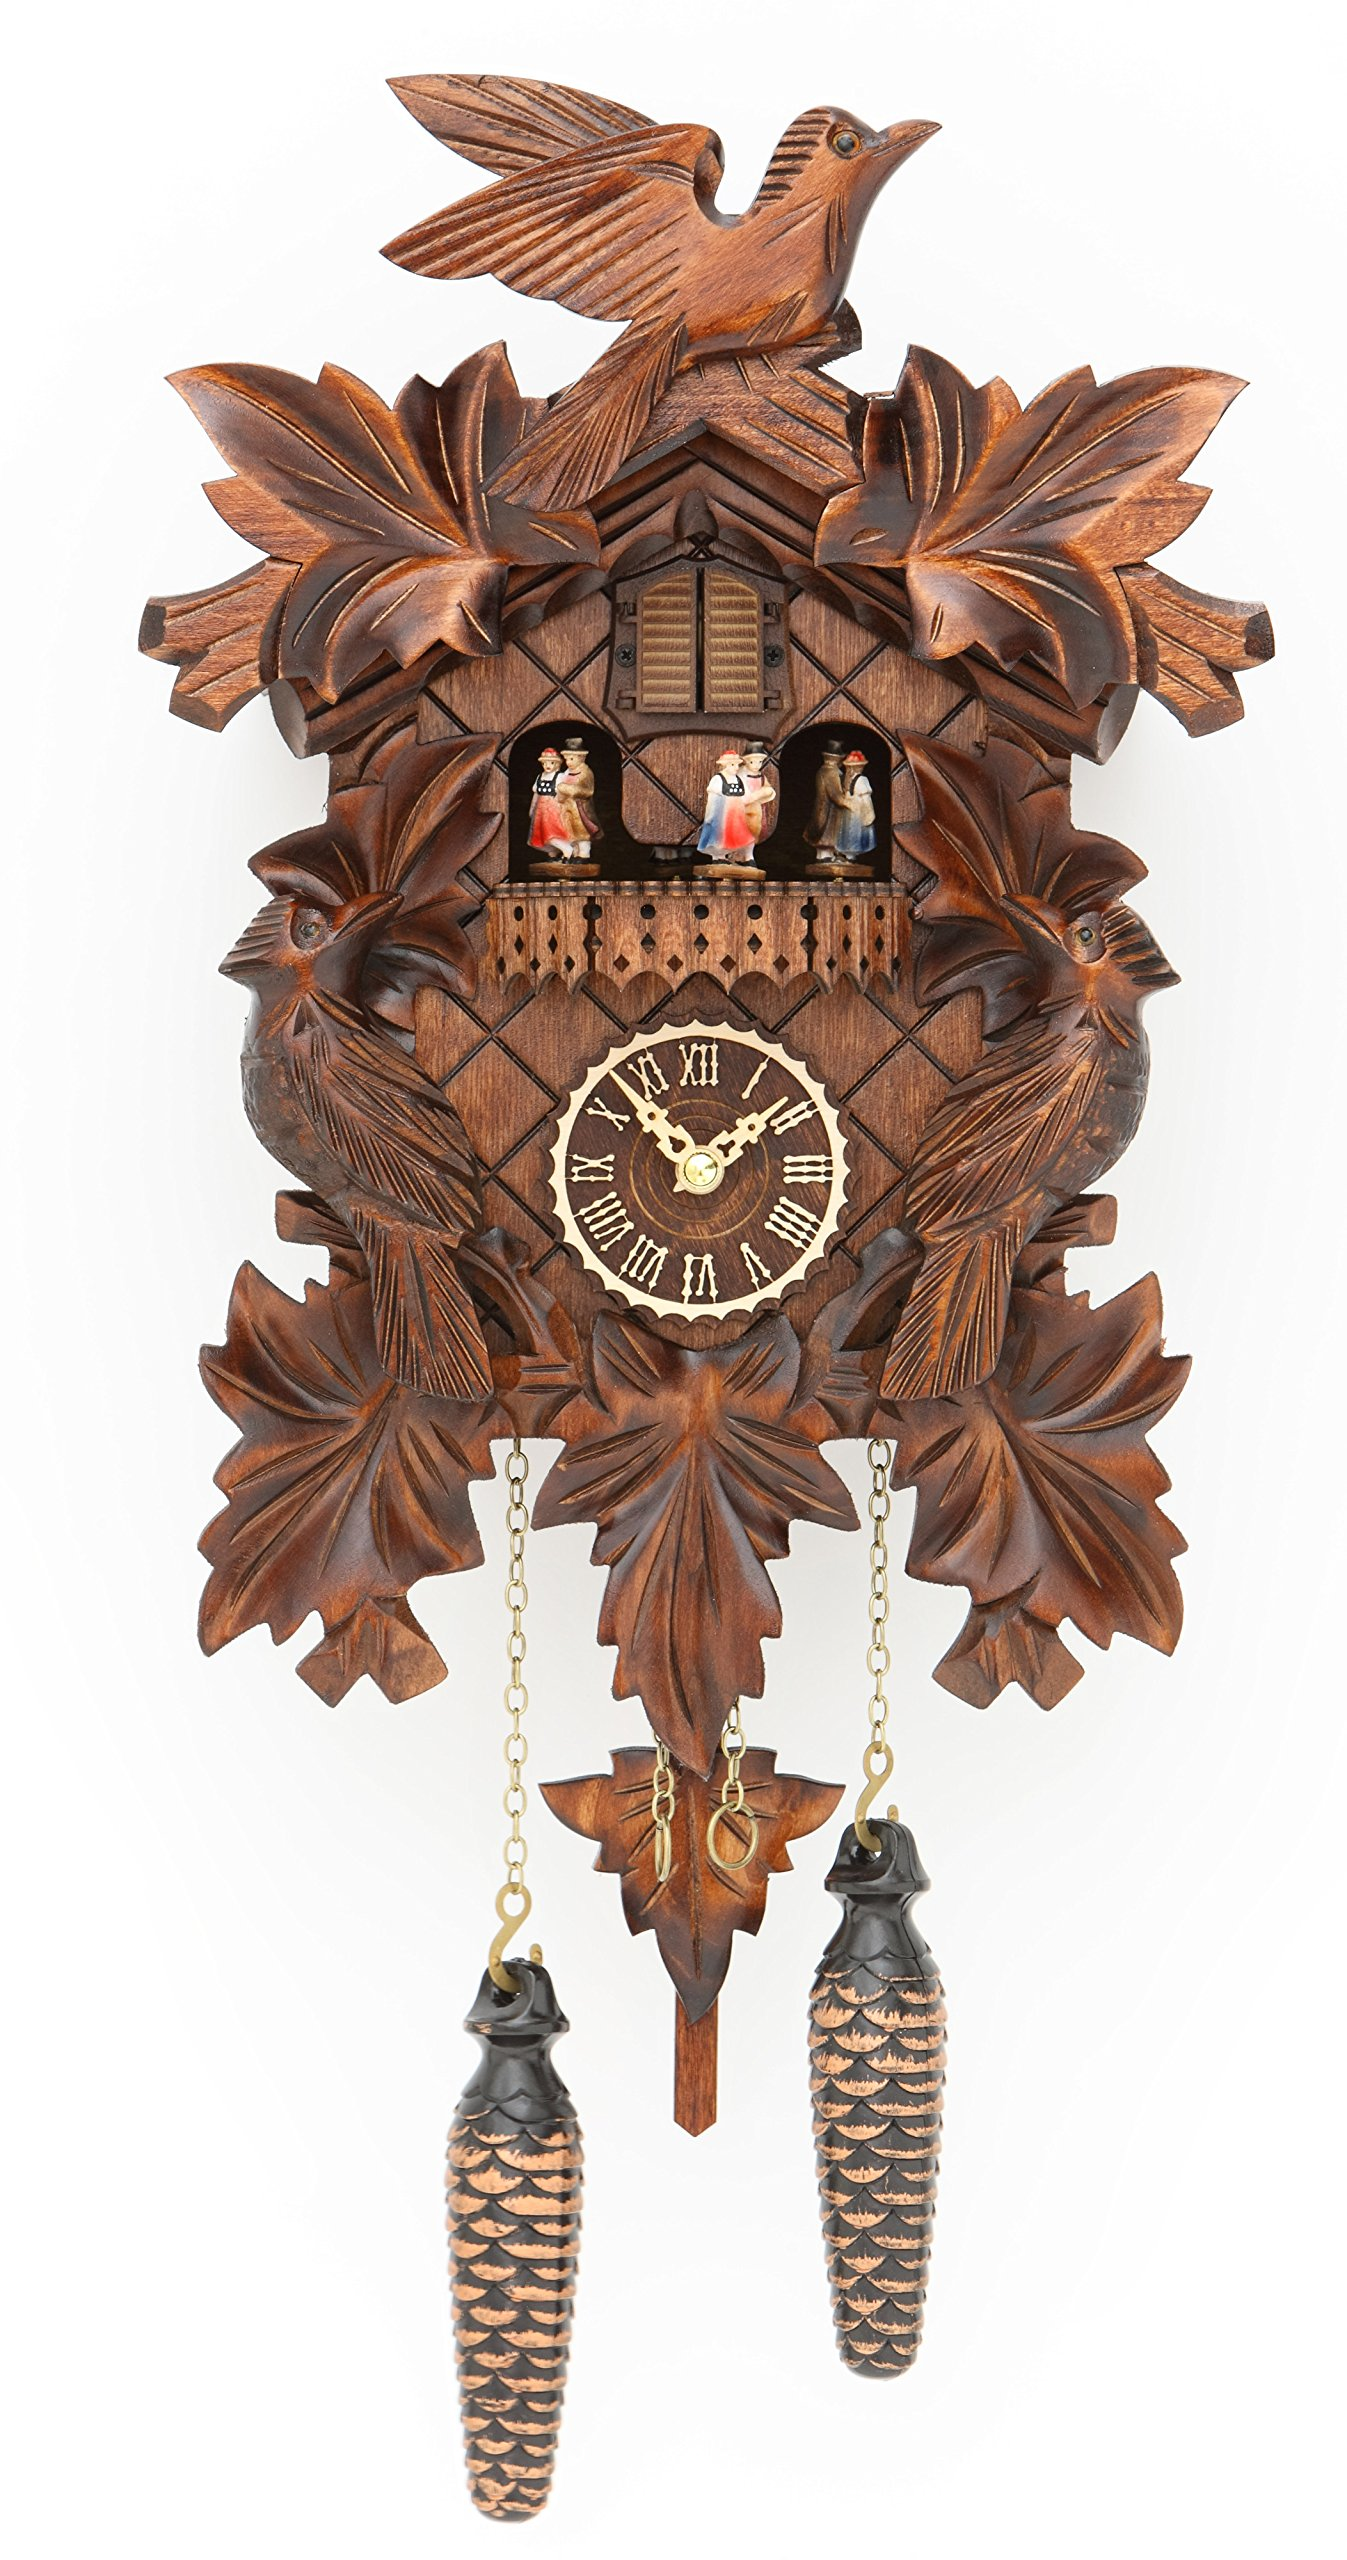 Quartz Cuckoo Clock with music 7 leaves, 3 birds, incl. batteries TU 377 QMT by Trenkle Uhren